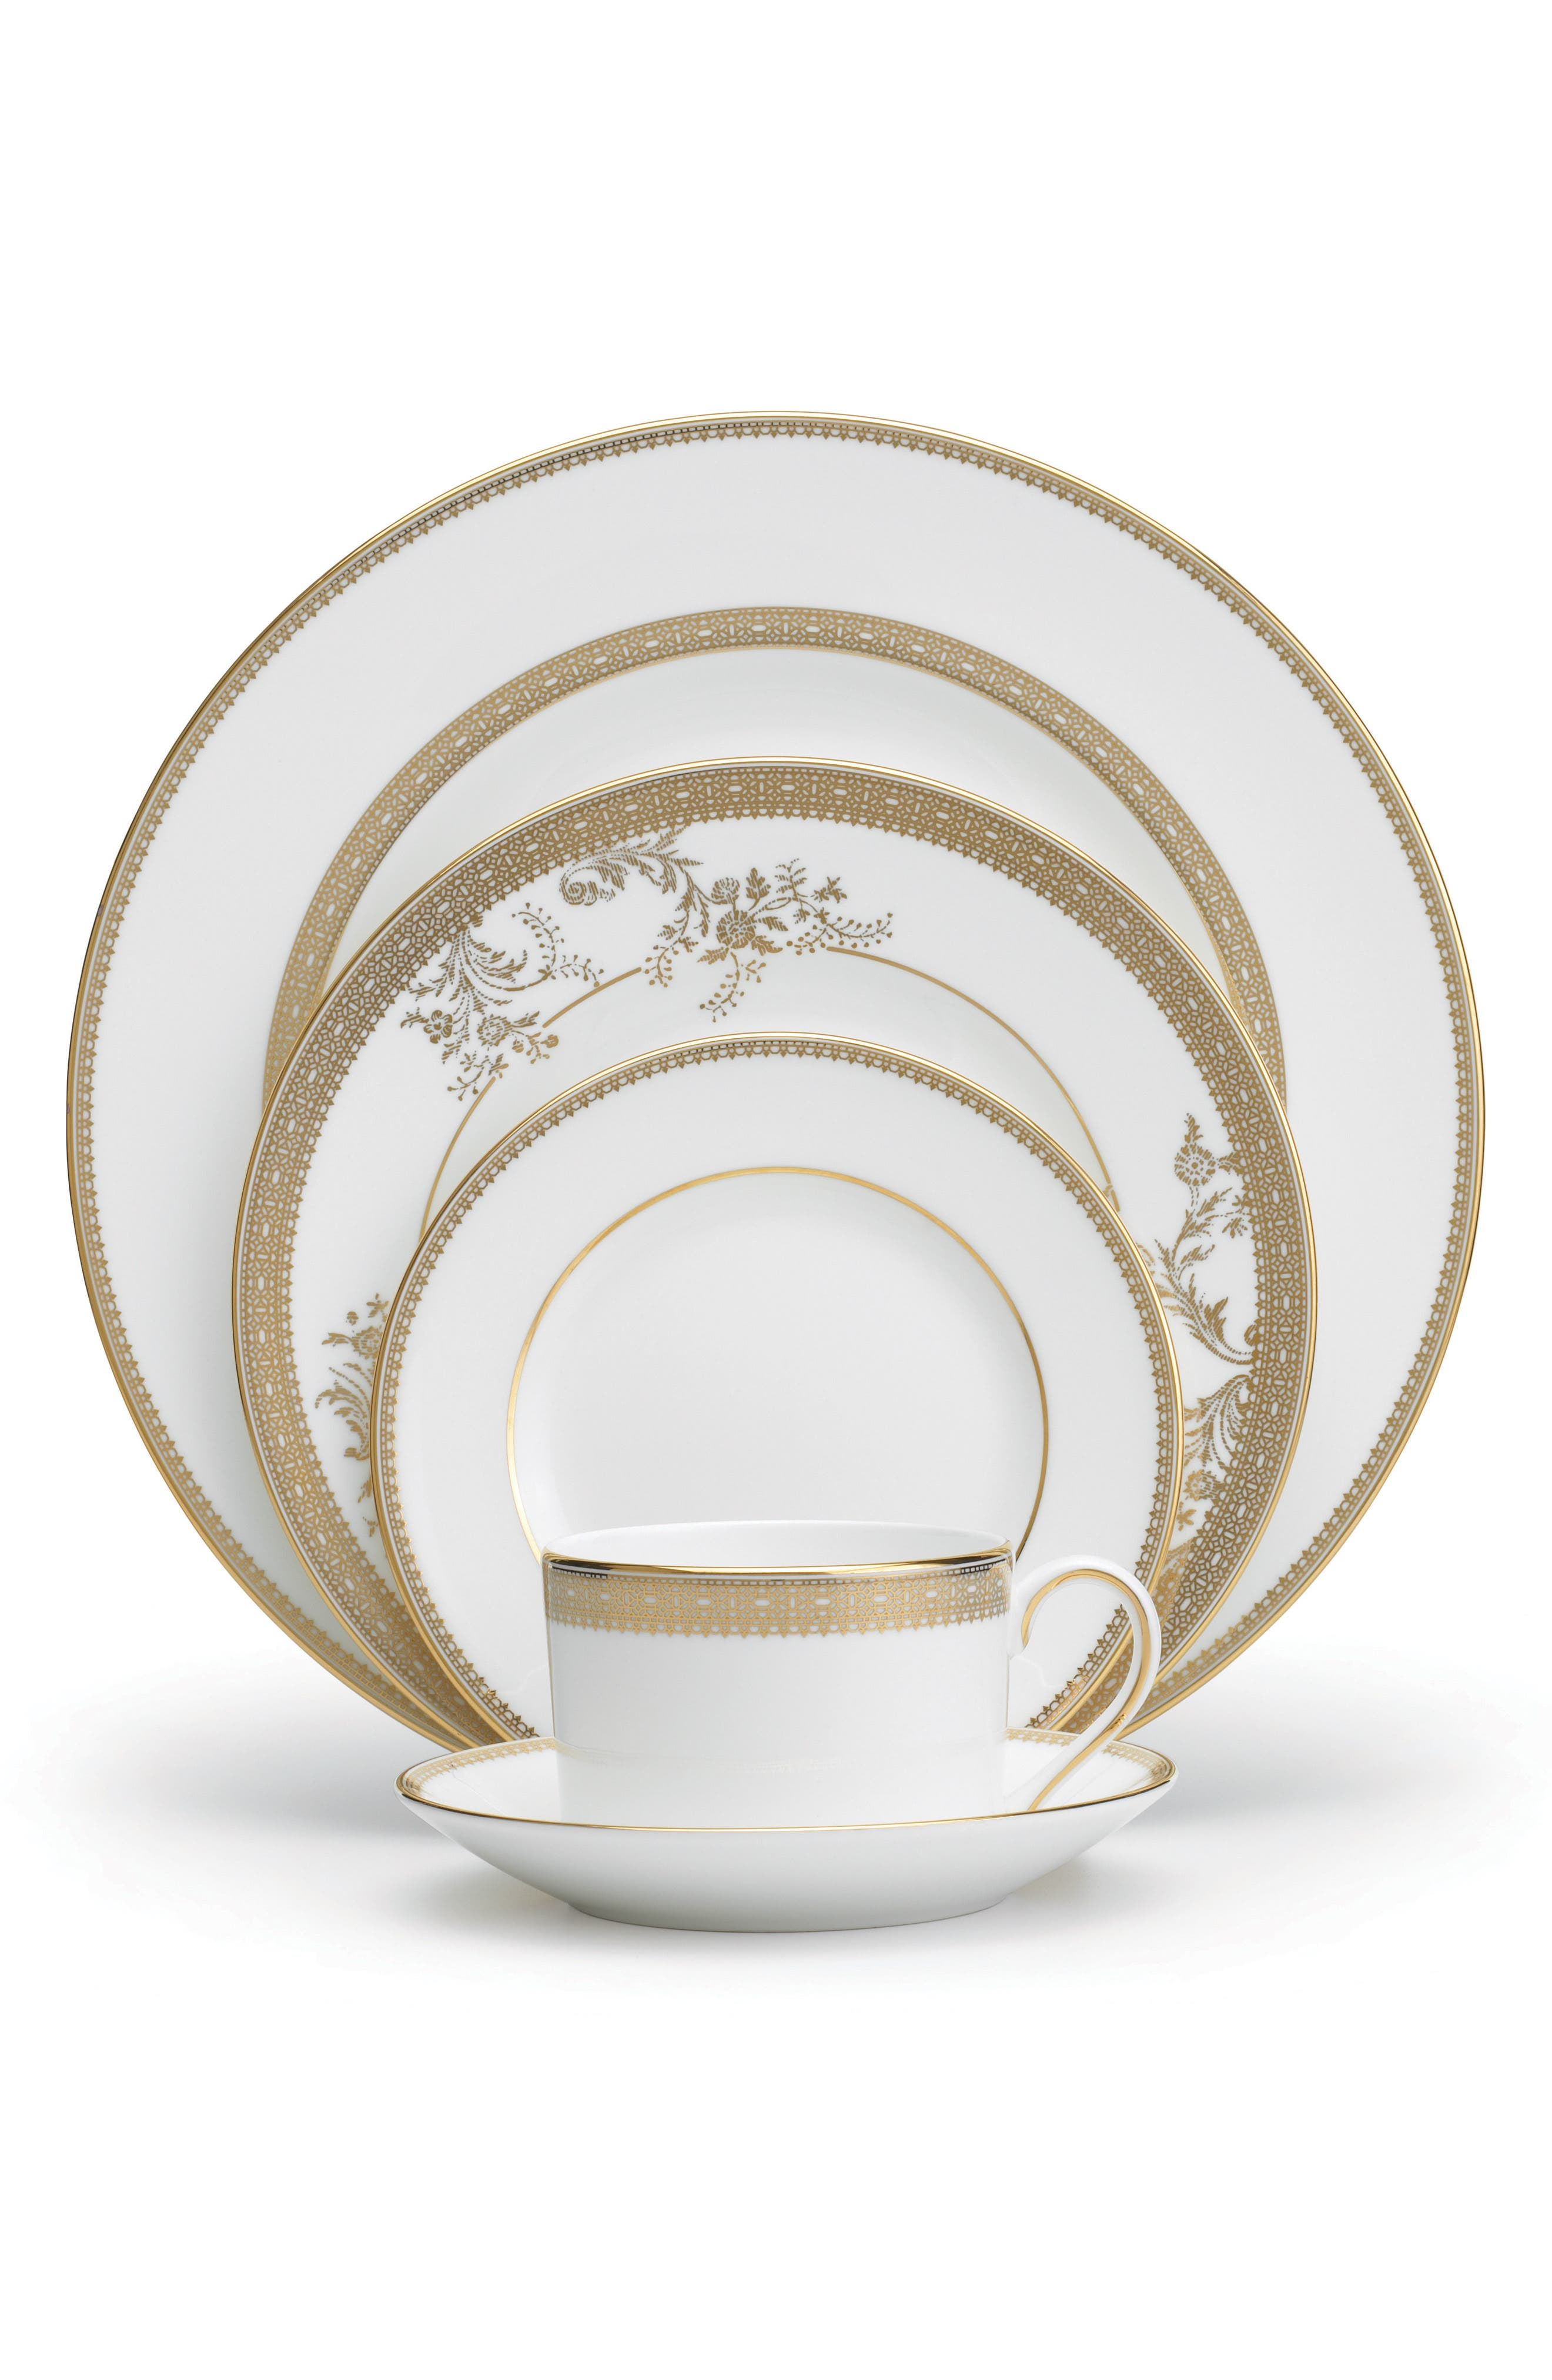 5-Piece Bone China Dinnerware Place Setting,                         Main,                         color, White